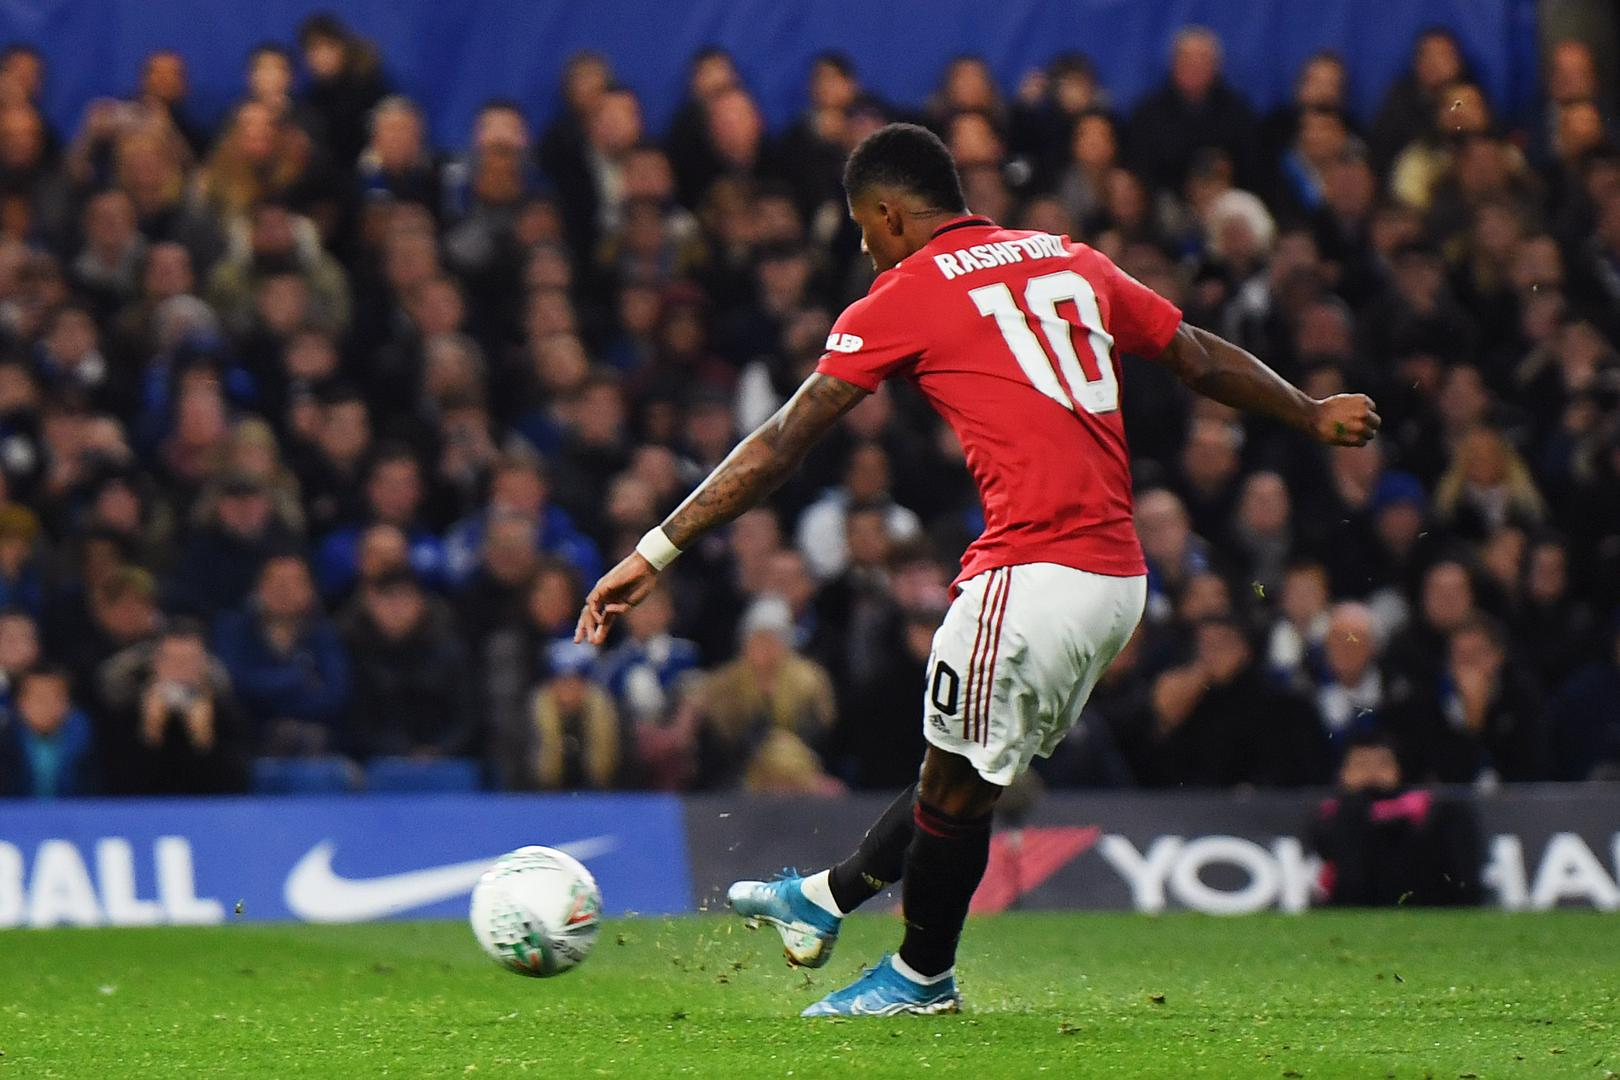 Marcus Rashford scores for Manchester United against Chelsea.